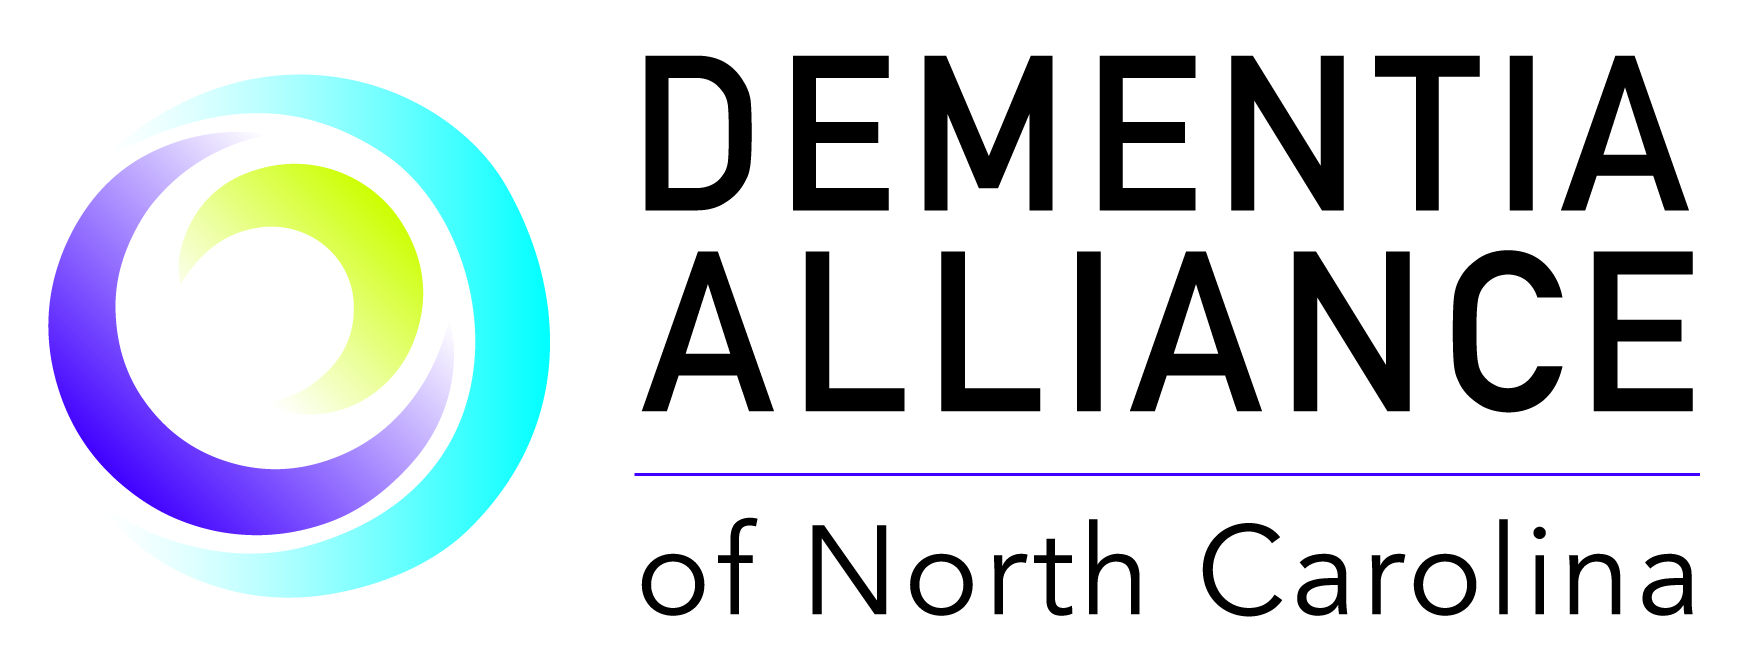 dementia alliance of north carolina